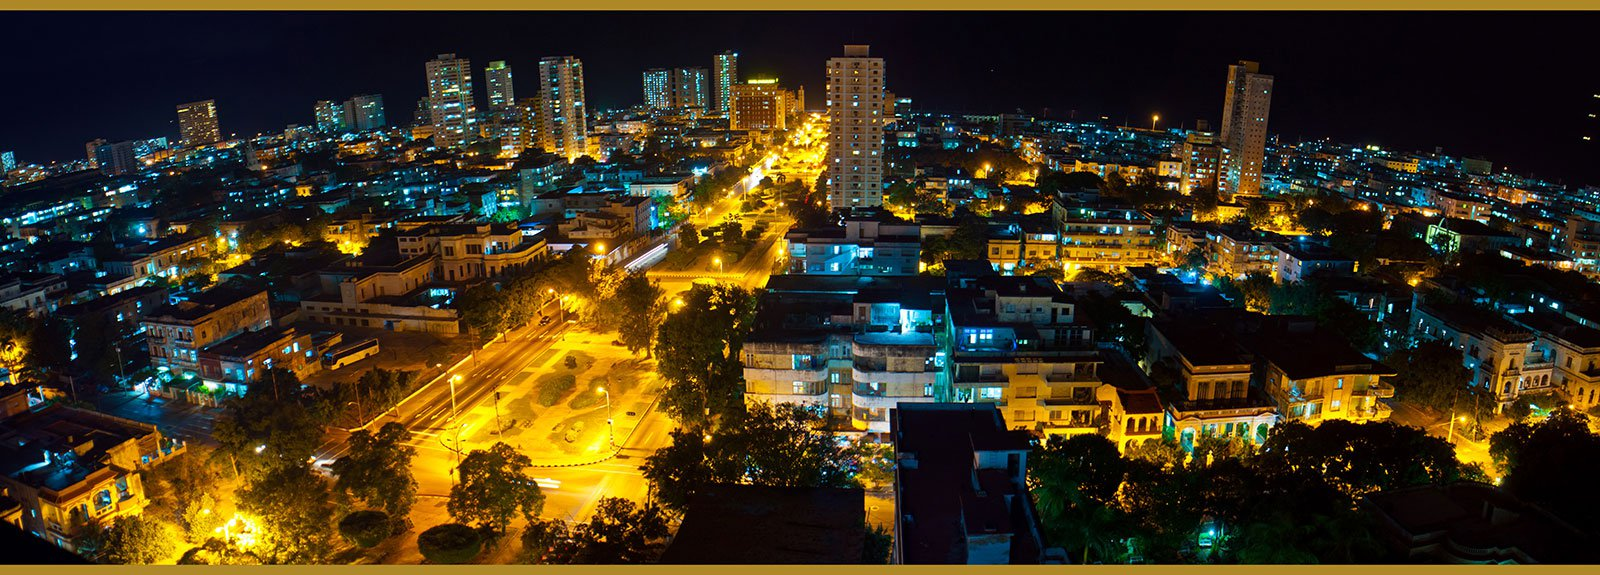 General view of Vedado at night